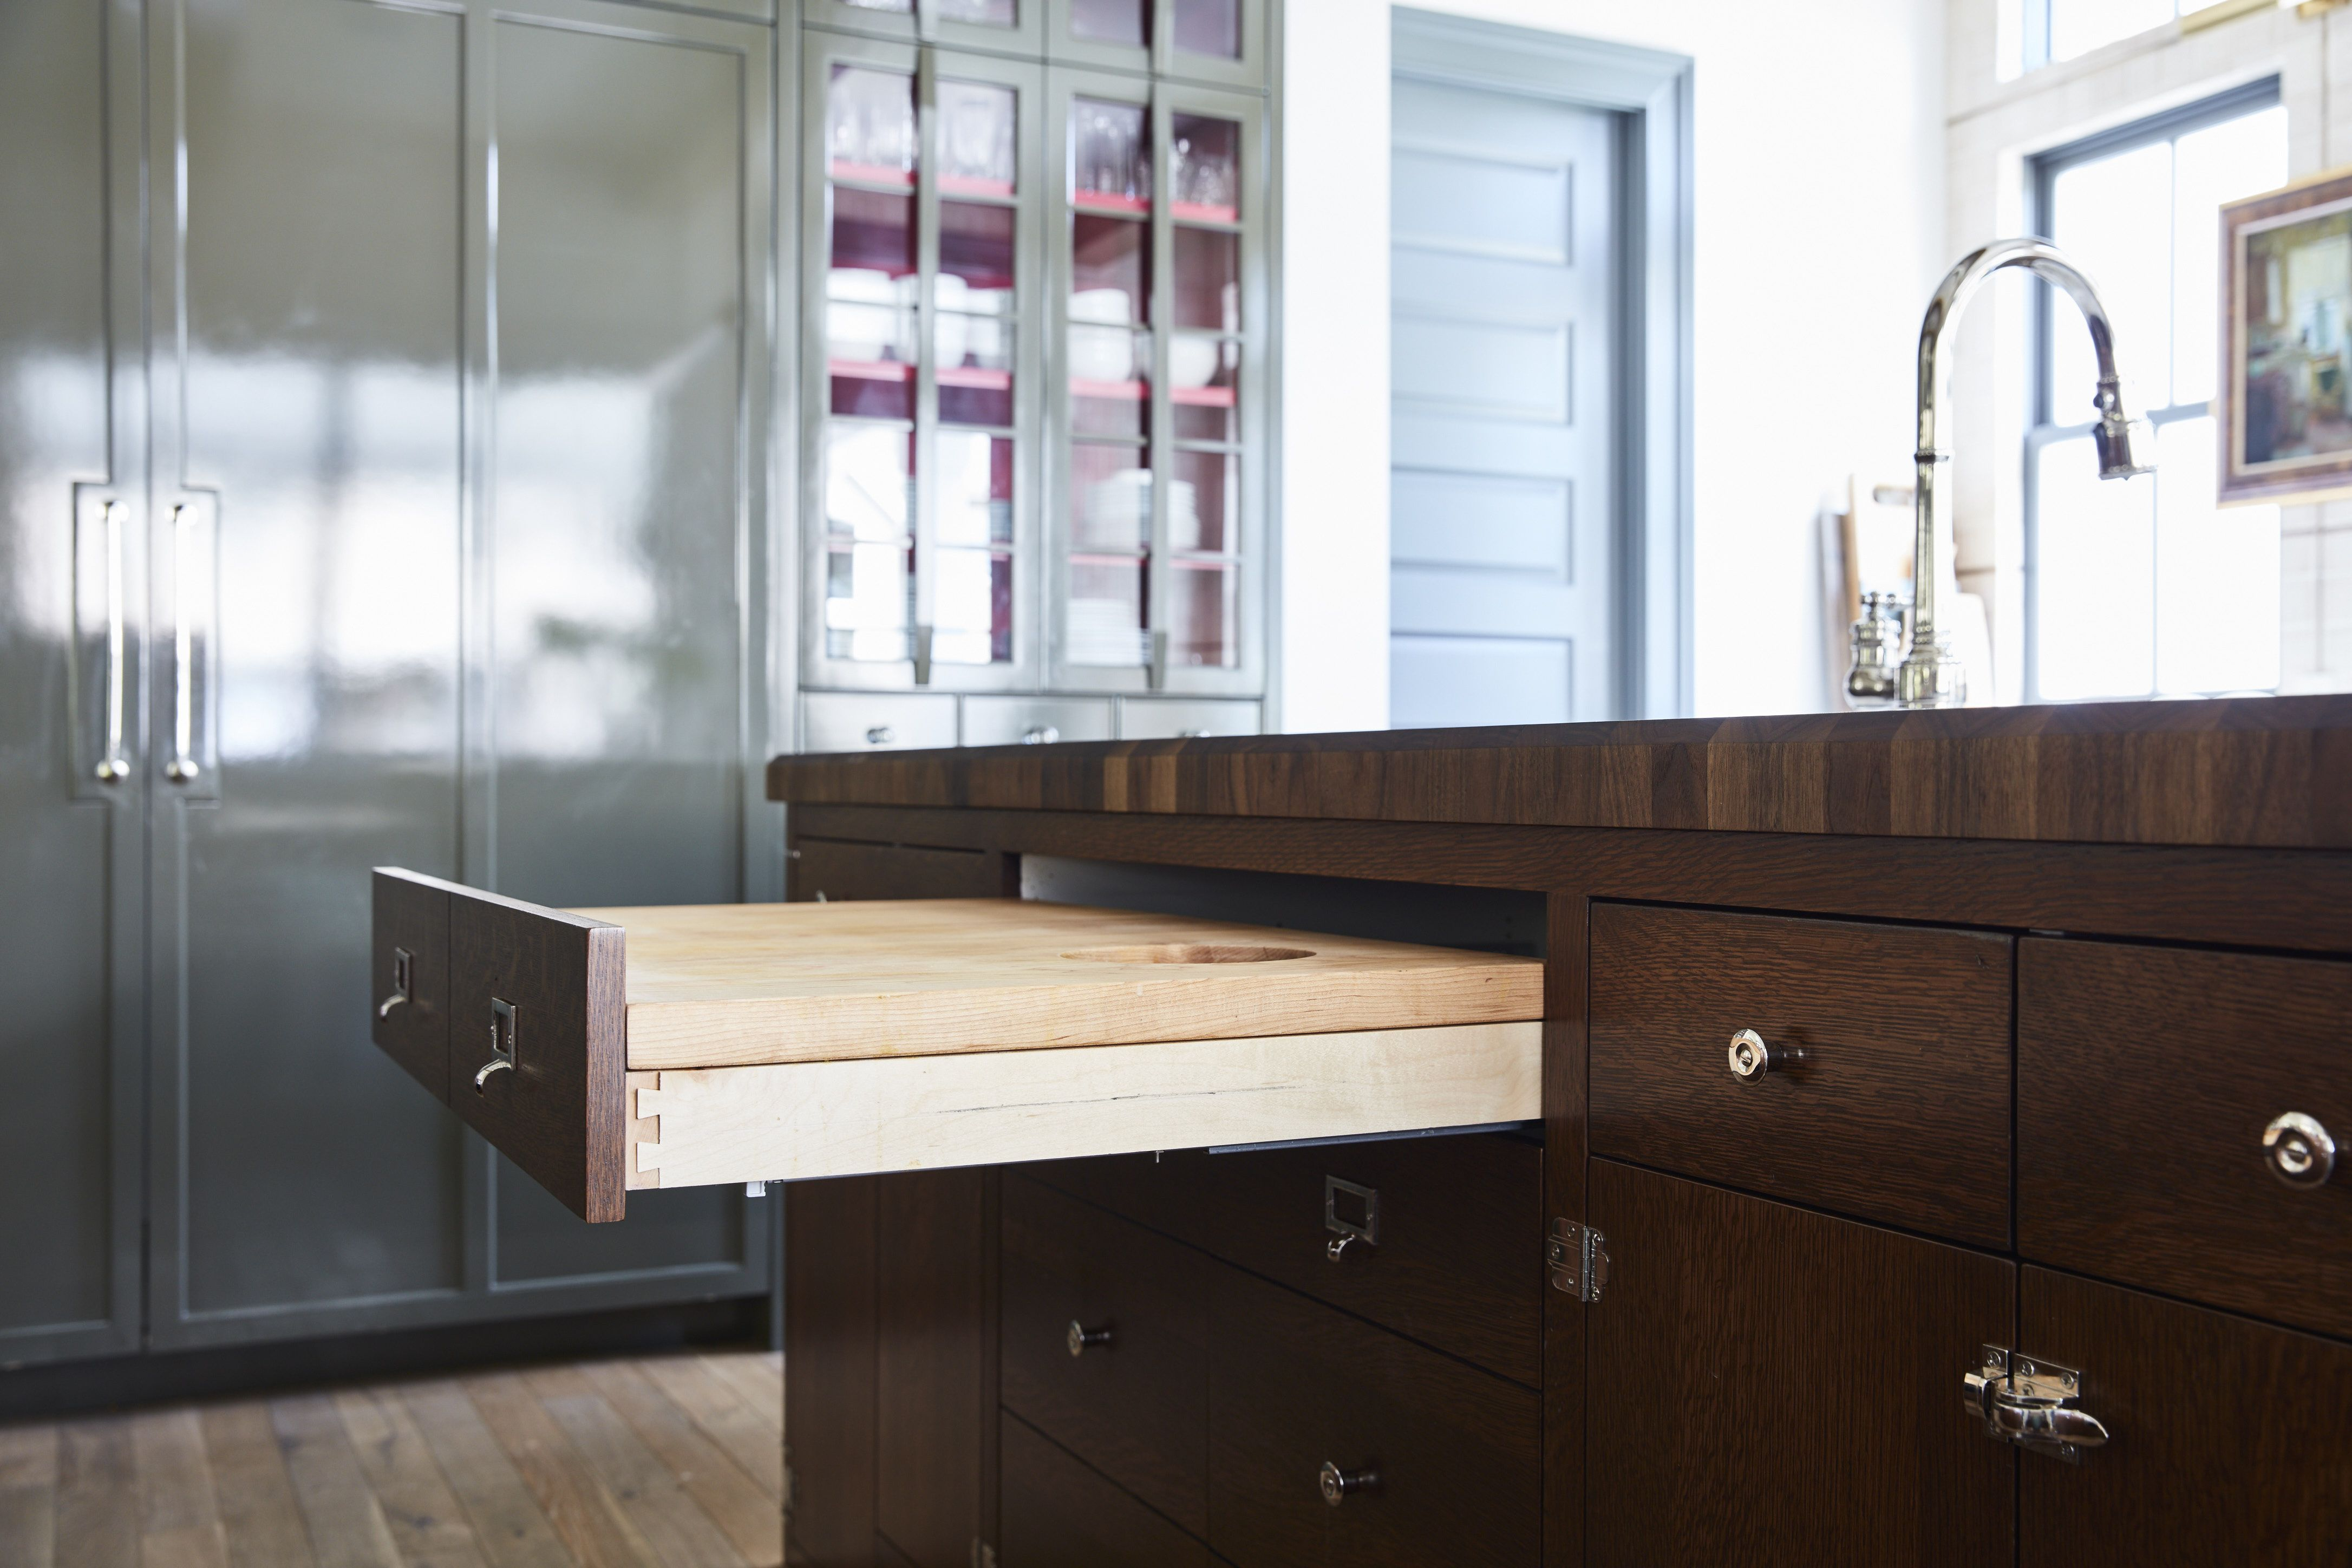 This Hidden Cutting Board Hack Will Make Your Kitchen Seem Cleaner Than It Is